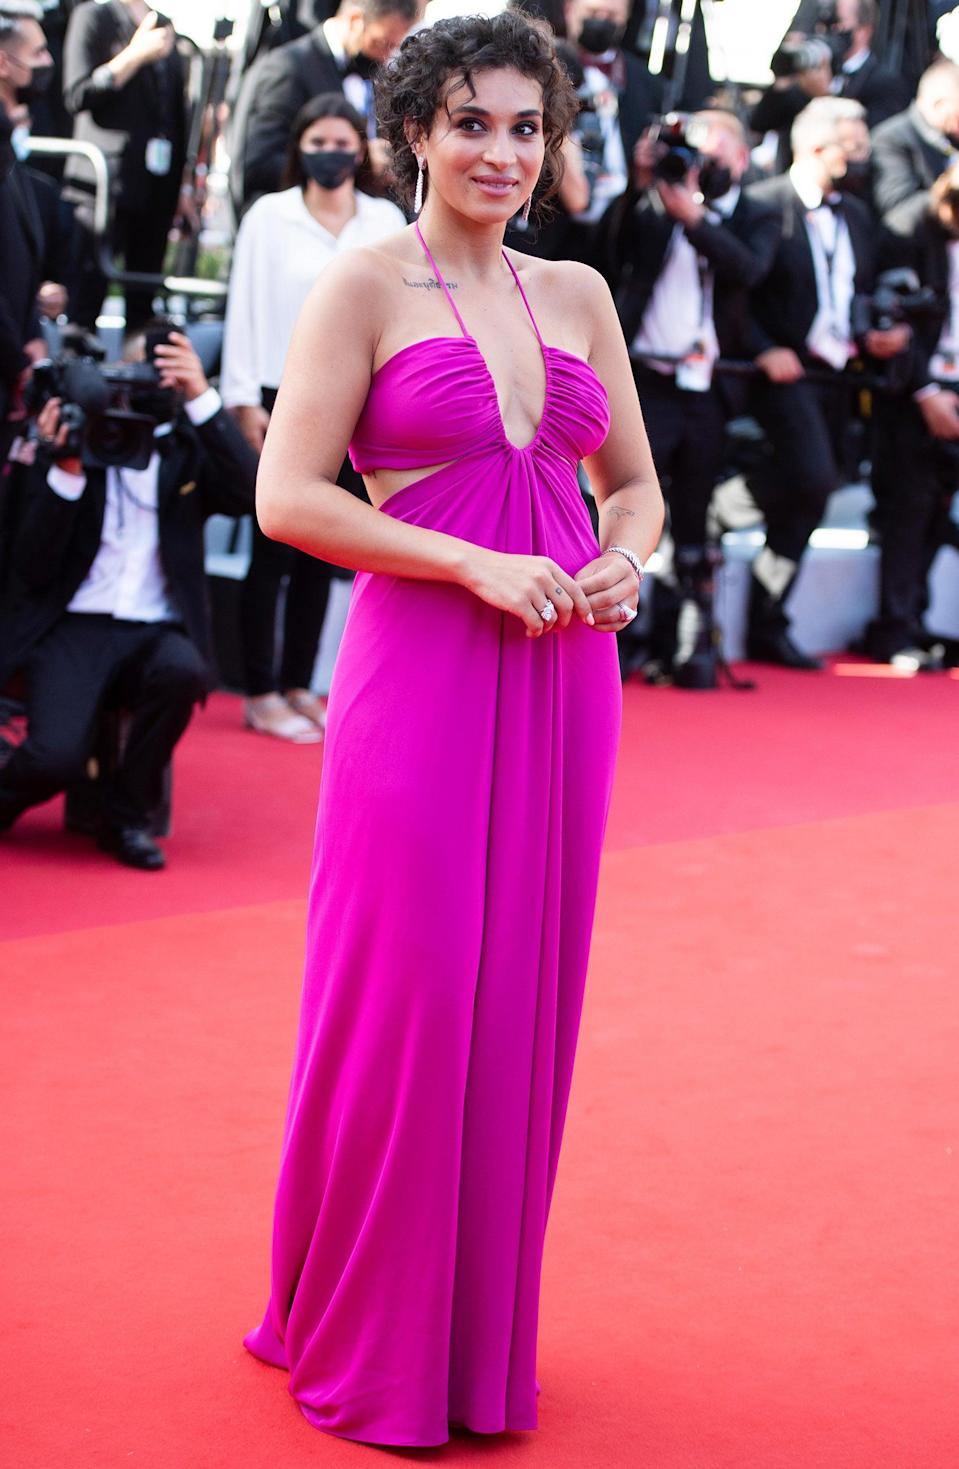 """French singer Camélia Jordana strolled on the red carpet in a magenta halter down with side cut-outs. <br><span class=""""copyright"""">Photo: Samir Hussein/WireImage.</span>"""